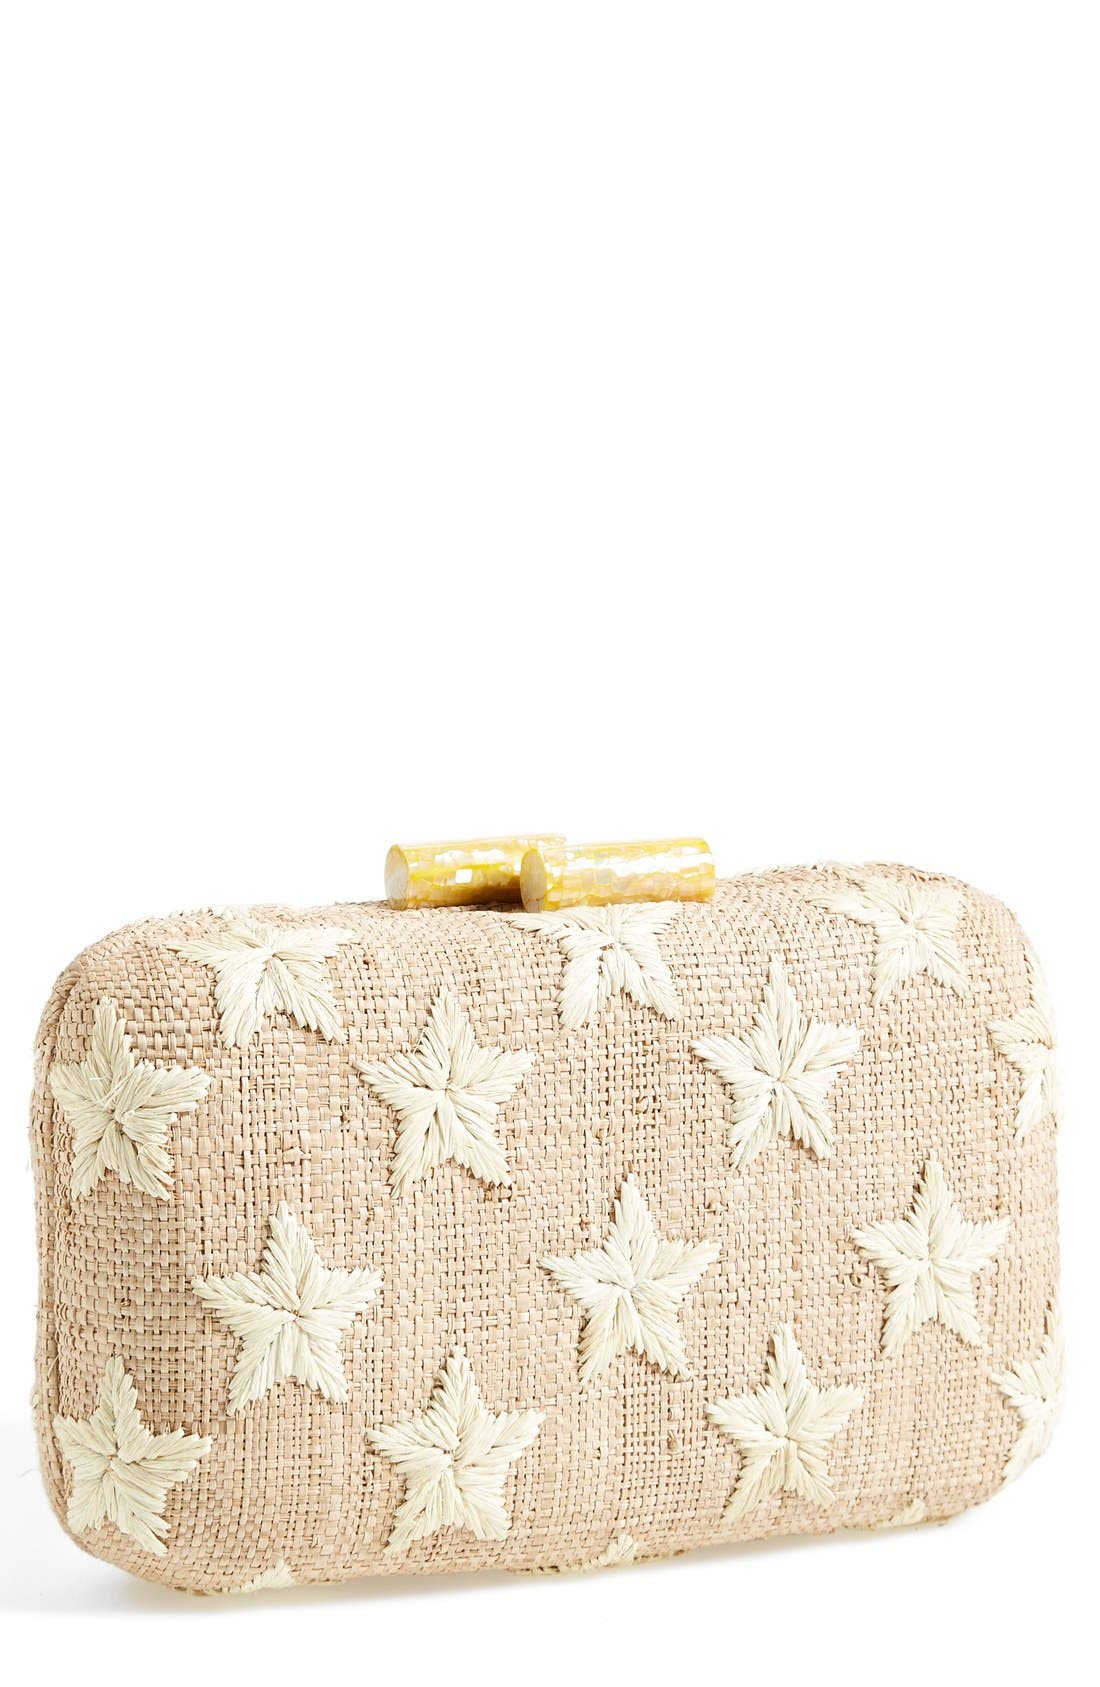 Alternate Image 1 Selected - Kayu 'Star' Straw Clutch